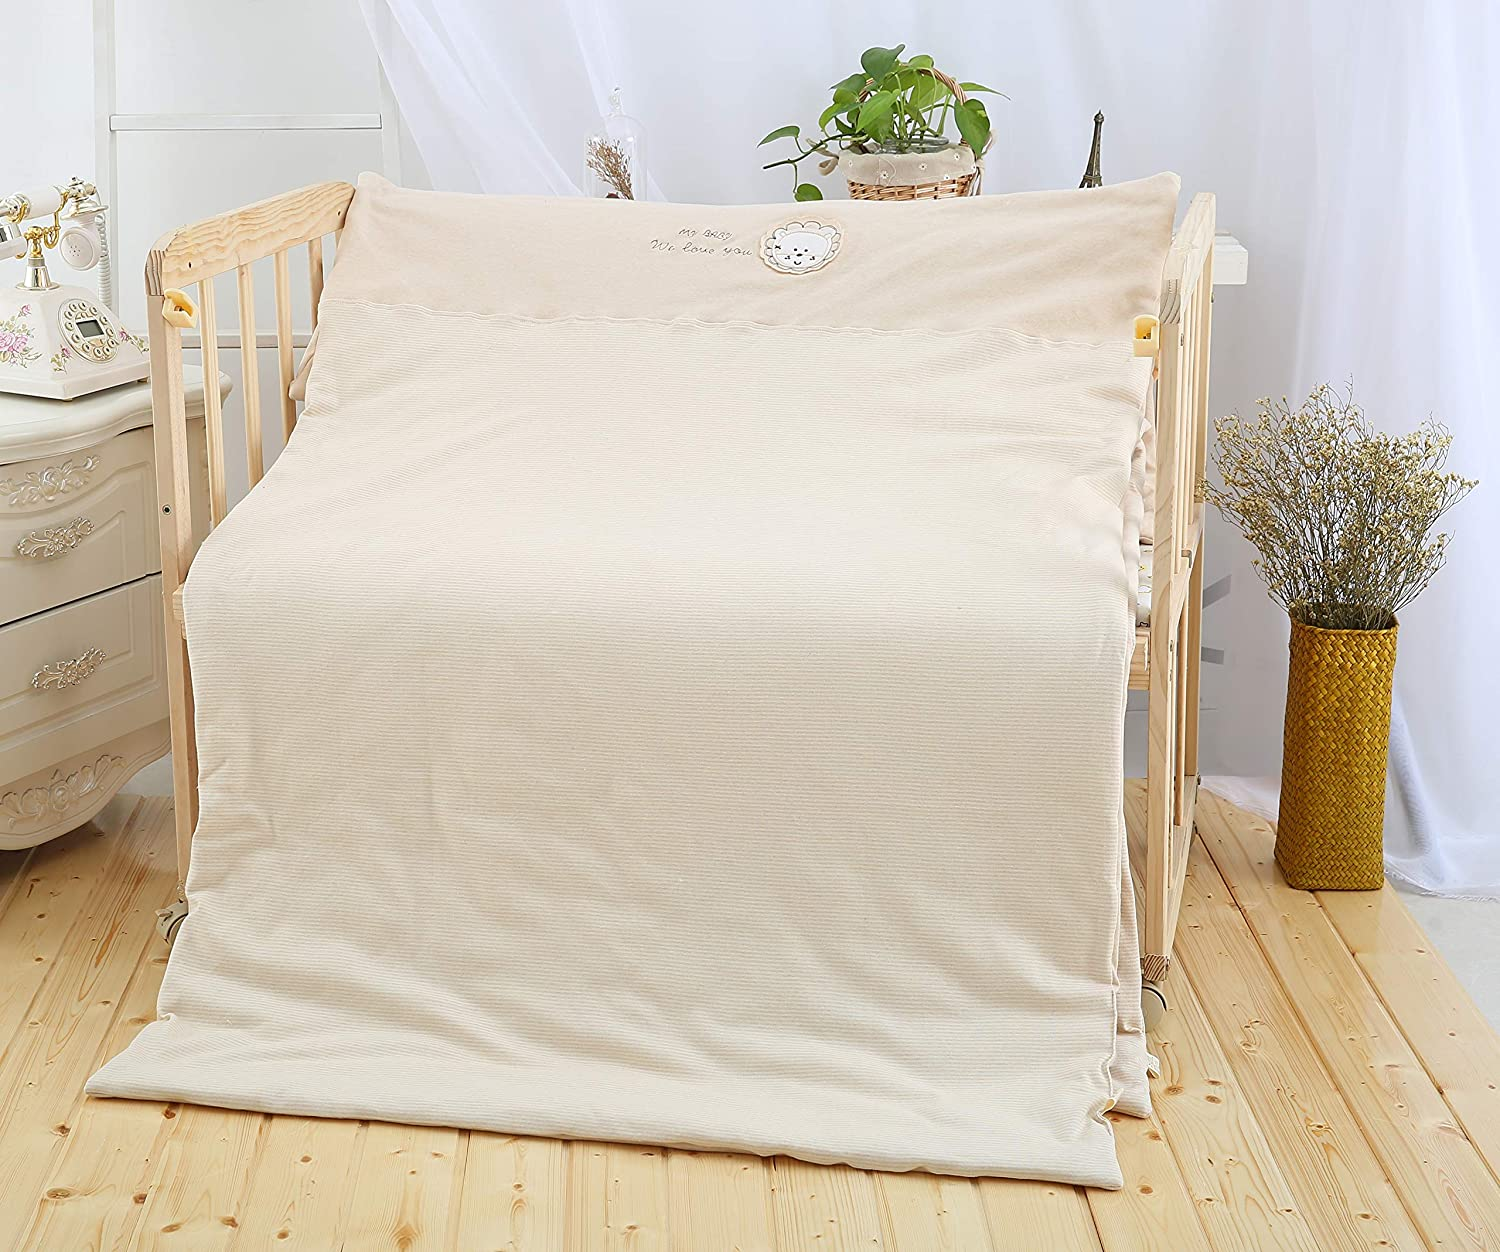 Toddler Cradle Quilt-100% Soft Organic Cotton Comforter,Breathable Blanket,Washable,Light Brown, 39.3